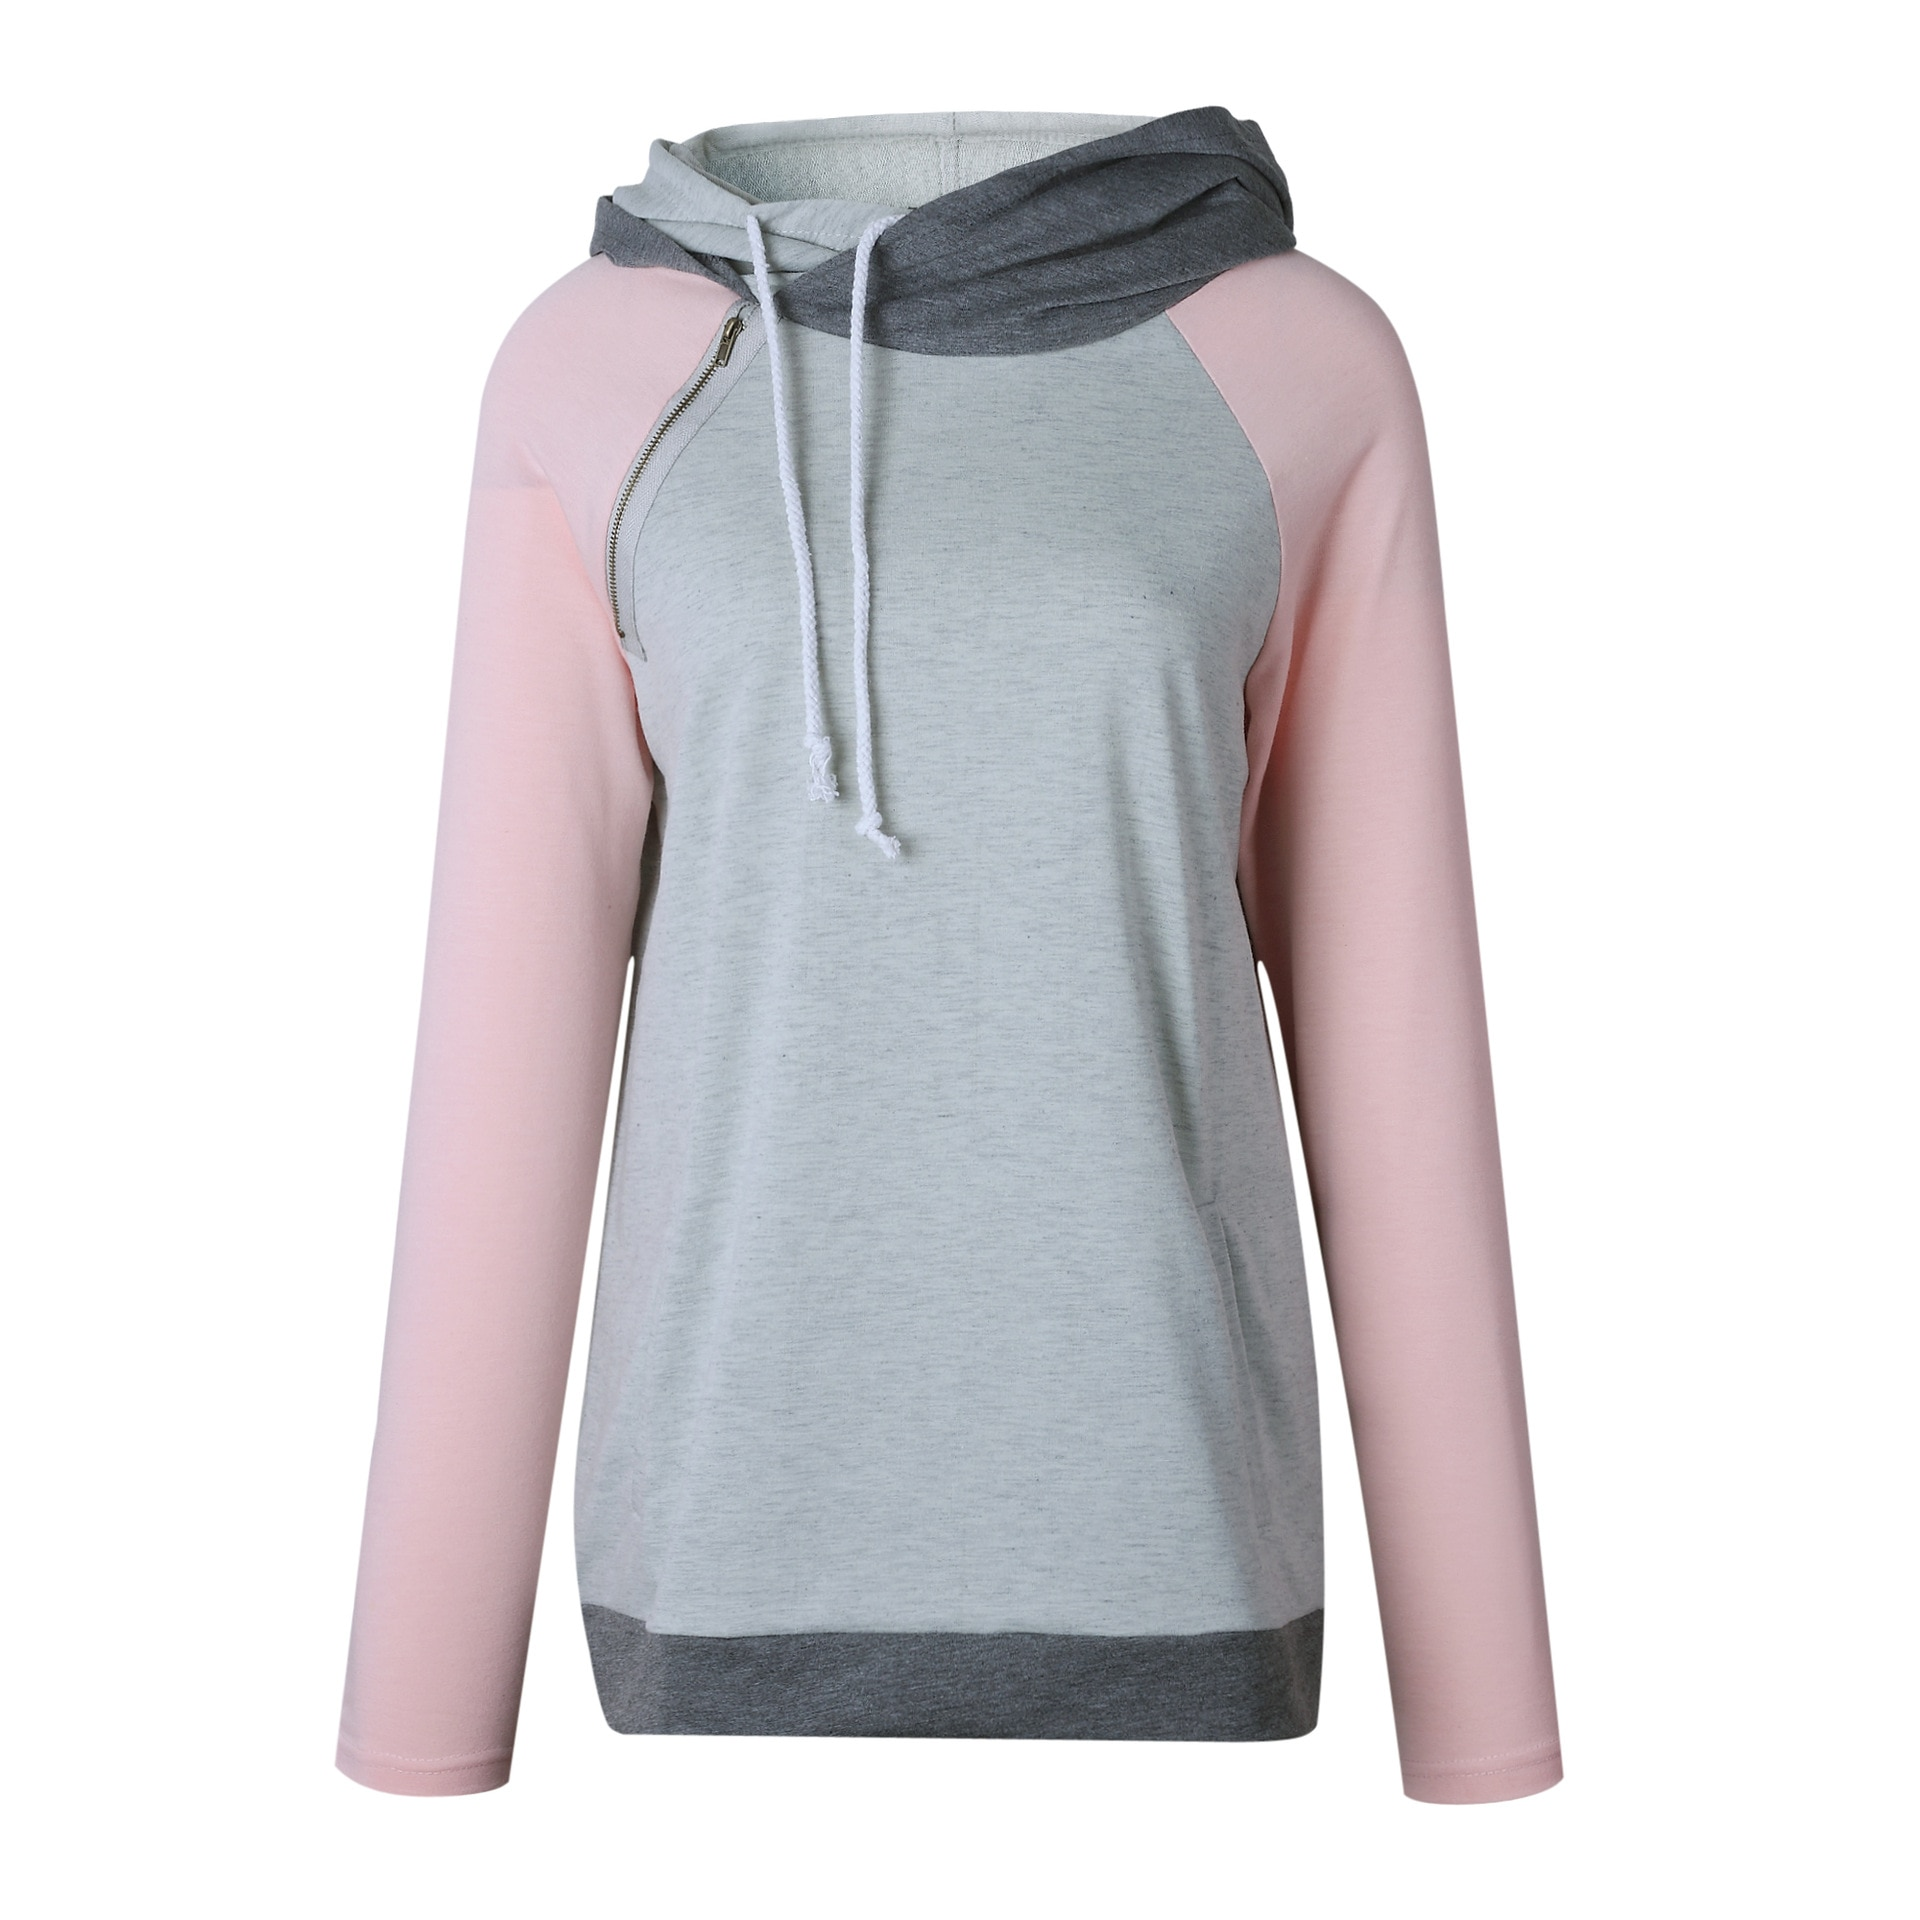 Women's Patchwork Striped Pullover Long Sleeve Hoodie, Tops With Pockets, Hooded Sweatshirt 56